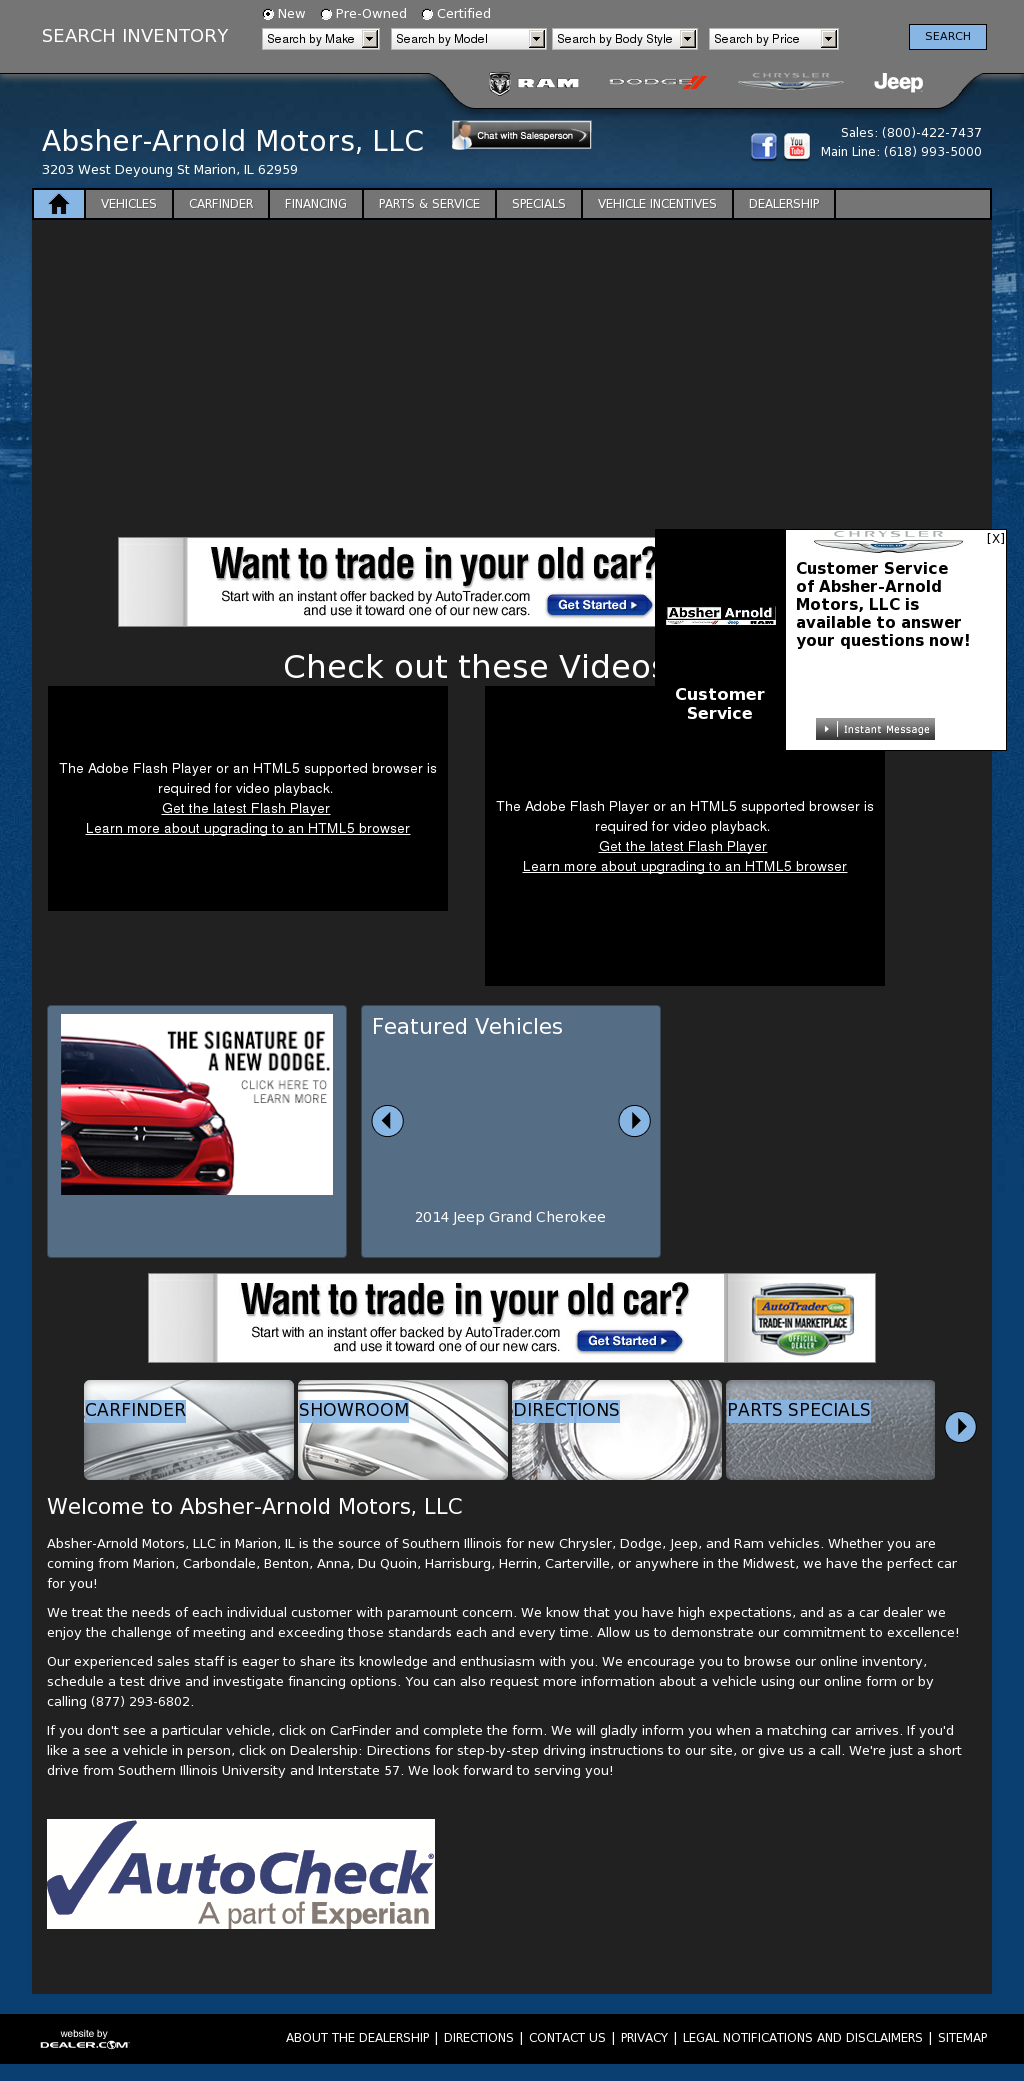 Absher-Arnold Motors Competitors, Revenue and Employees - Owler Company Profile